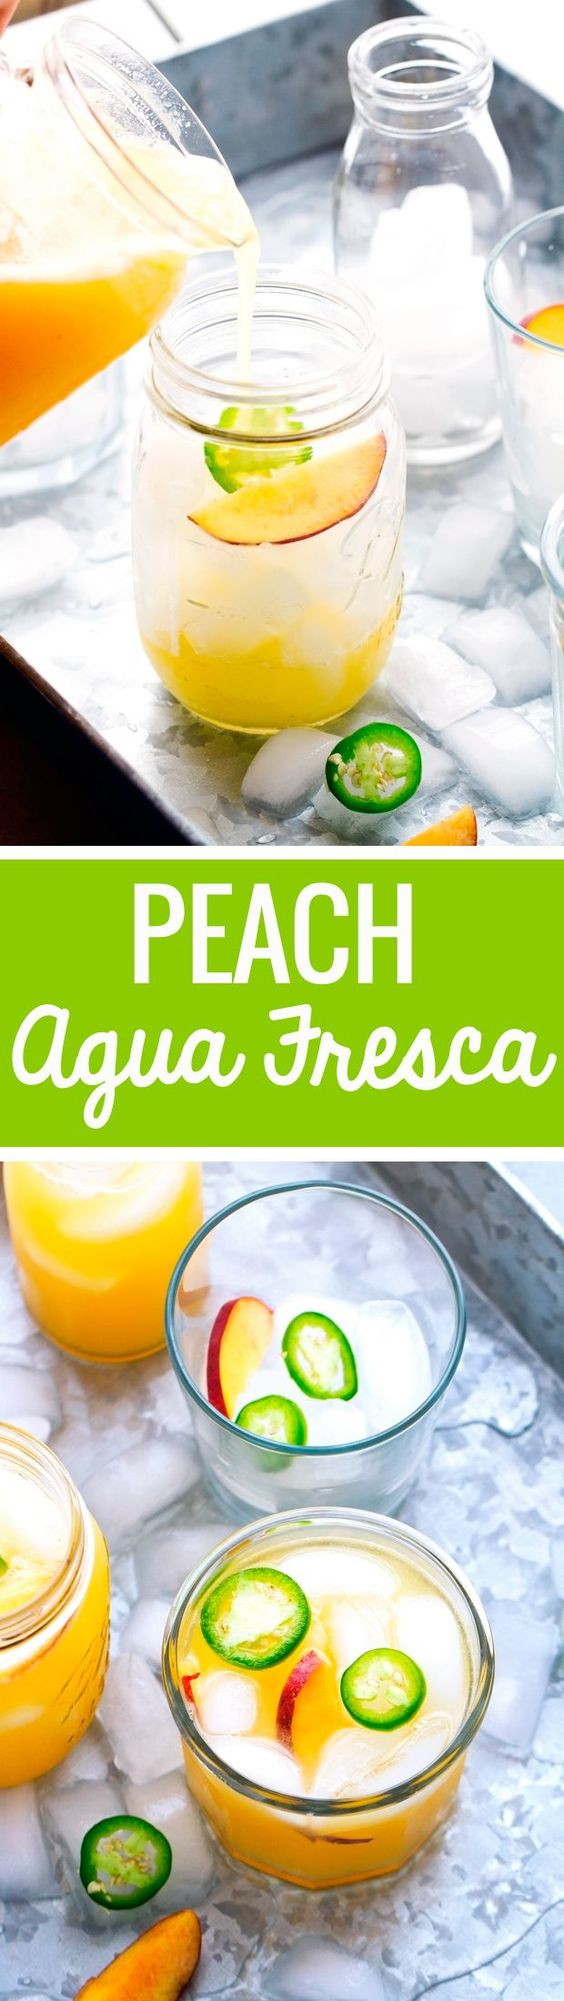 Peach Agua Fresca Alcohol Free Beverage Recipe via LIttle Spice Jar - A cool and refreshing drink that's refined sugar free and perfect to chill out with this summer! The BEST Easy Non-Alcoholic Drinks Recipes - Creative Mocktails and Family Friendly, Alcohol-Free, Big Batch Party Beverages for a Crowd! #mocktails #virgindrinks #alcoholfreedrinks #nonalcoholicdrinks #familyfriendlydrinks #partypunch #partydrinks #newyearseve #partydrinkrecipes